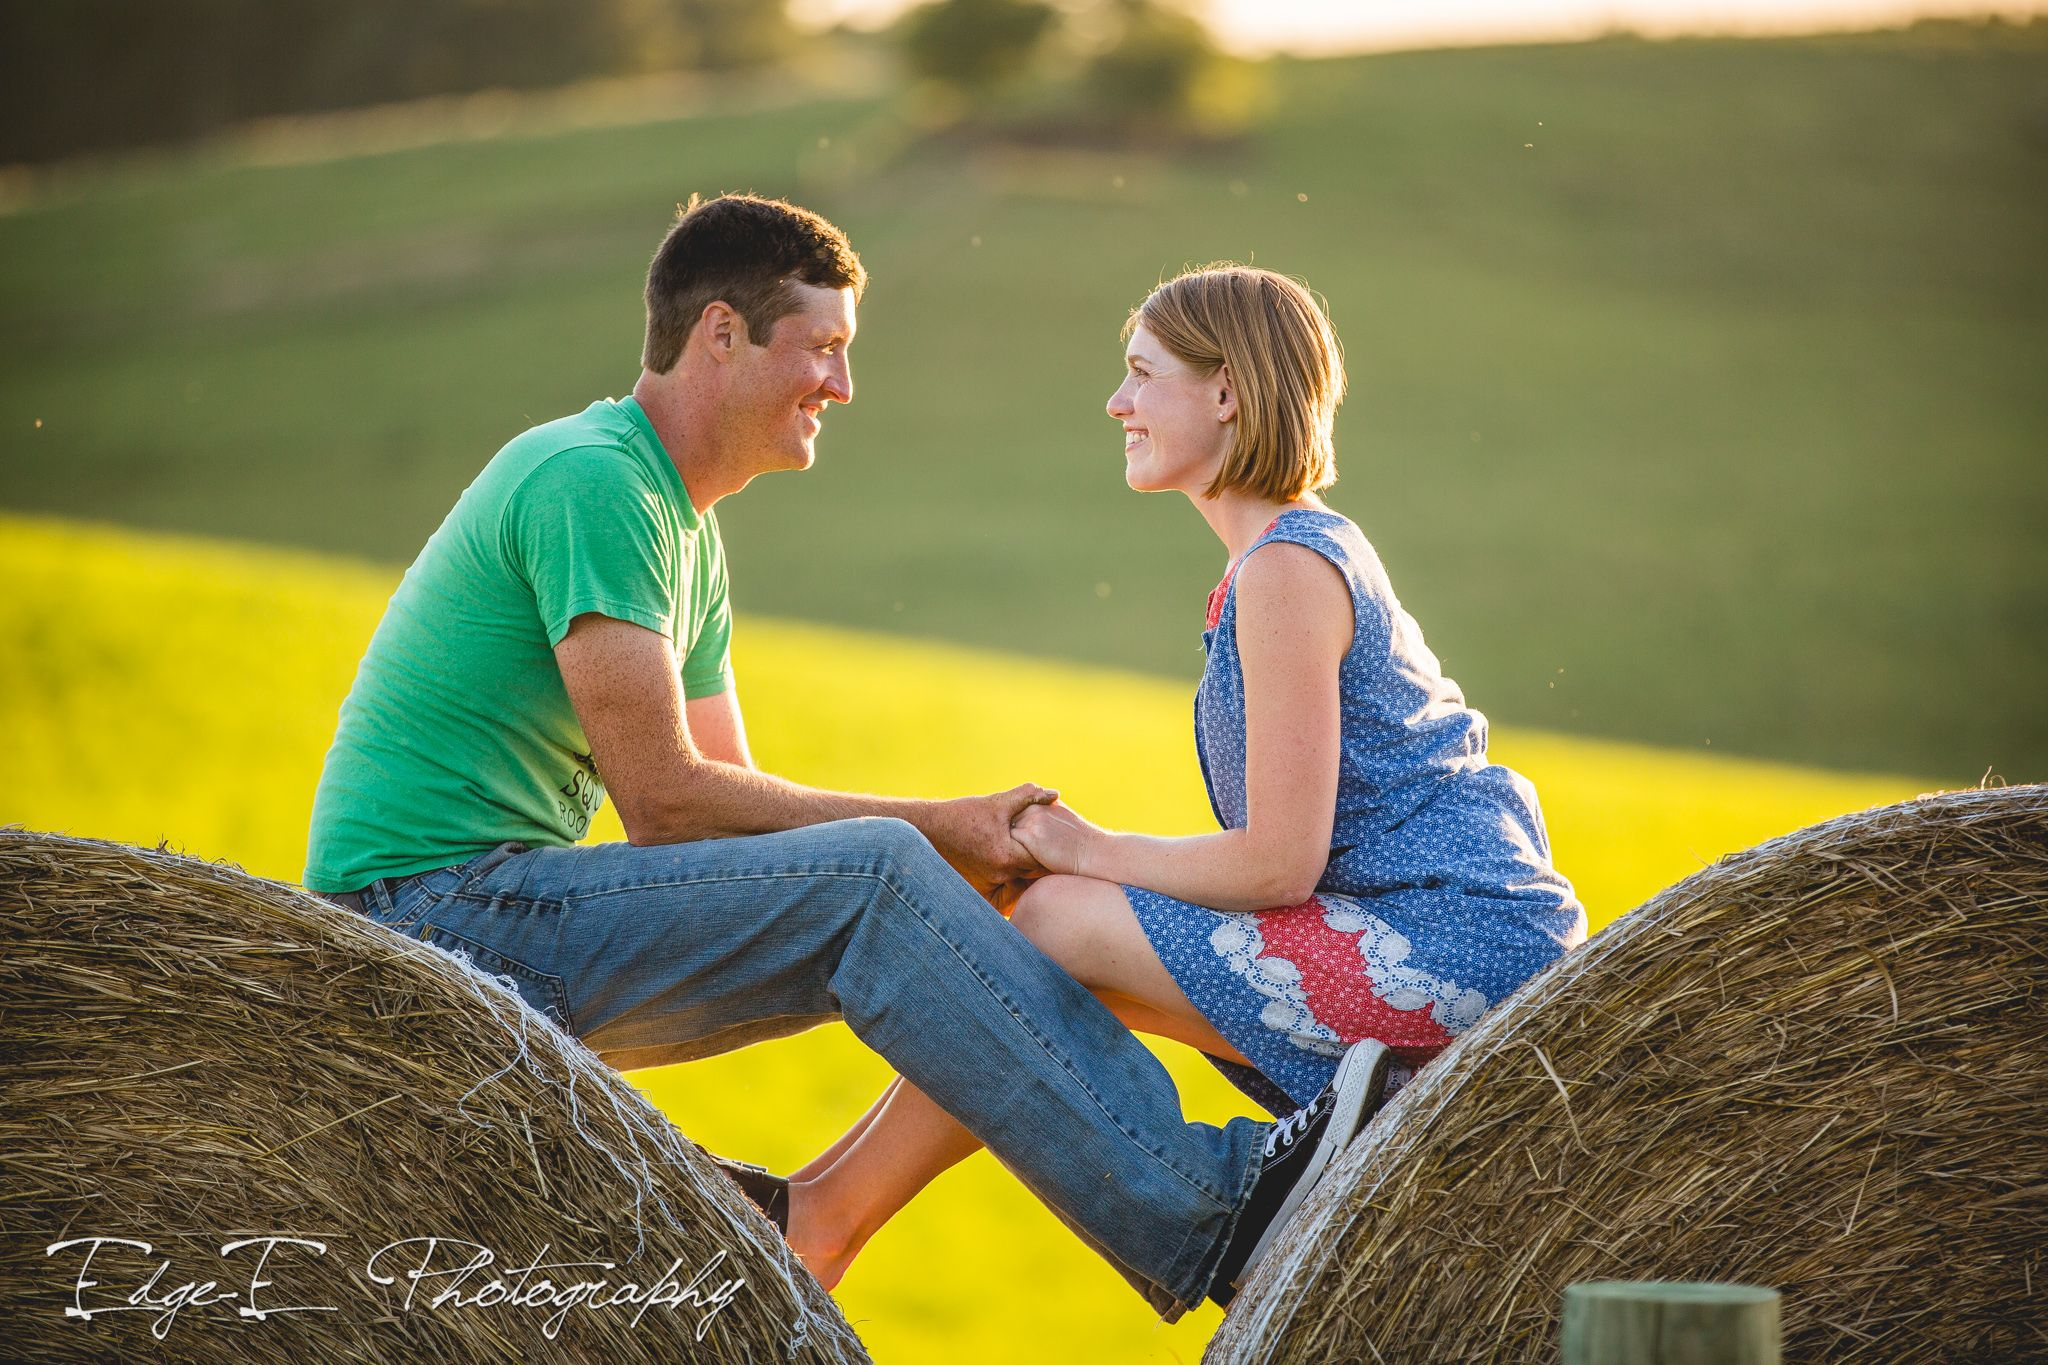 couple, cute, edgee, edge-e, edge-e photography, edgeephoto, edgy, engaged, engagement, farm, farmers, hay, hay bails, love, organic, people, photographer, photography, square root, summer, wisconsin, www.edgeephoto.com, www.edgeephotography.com